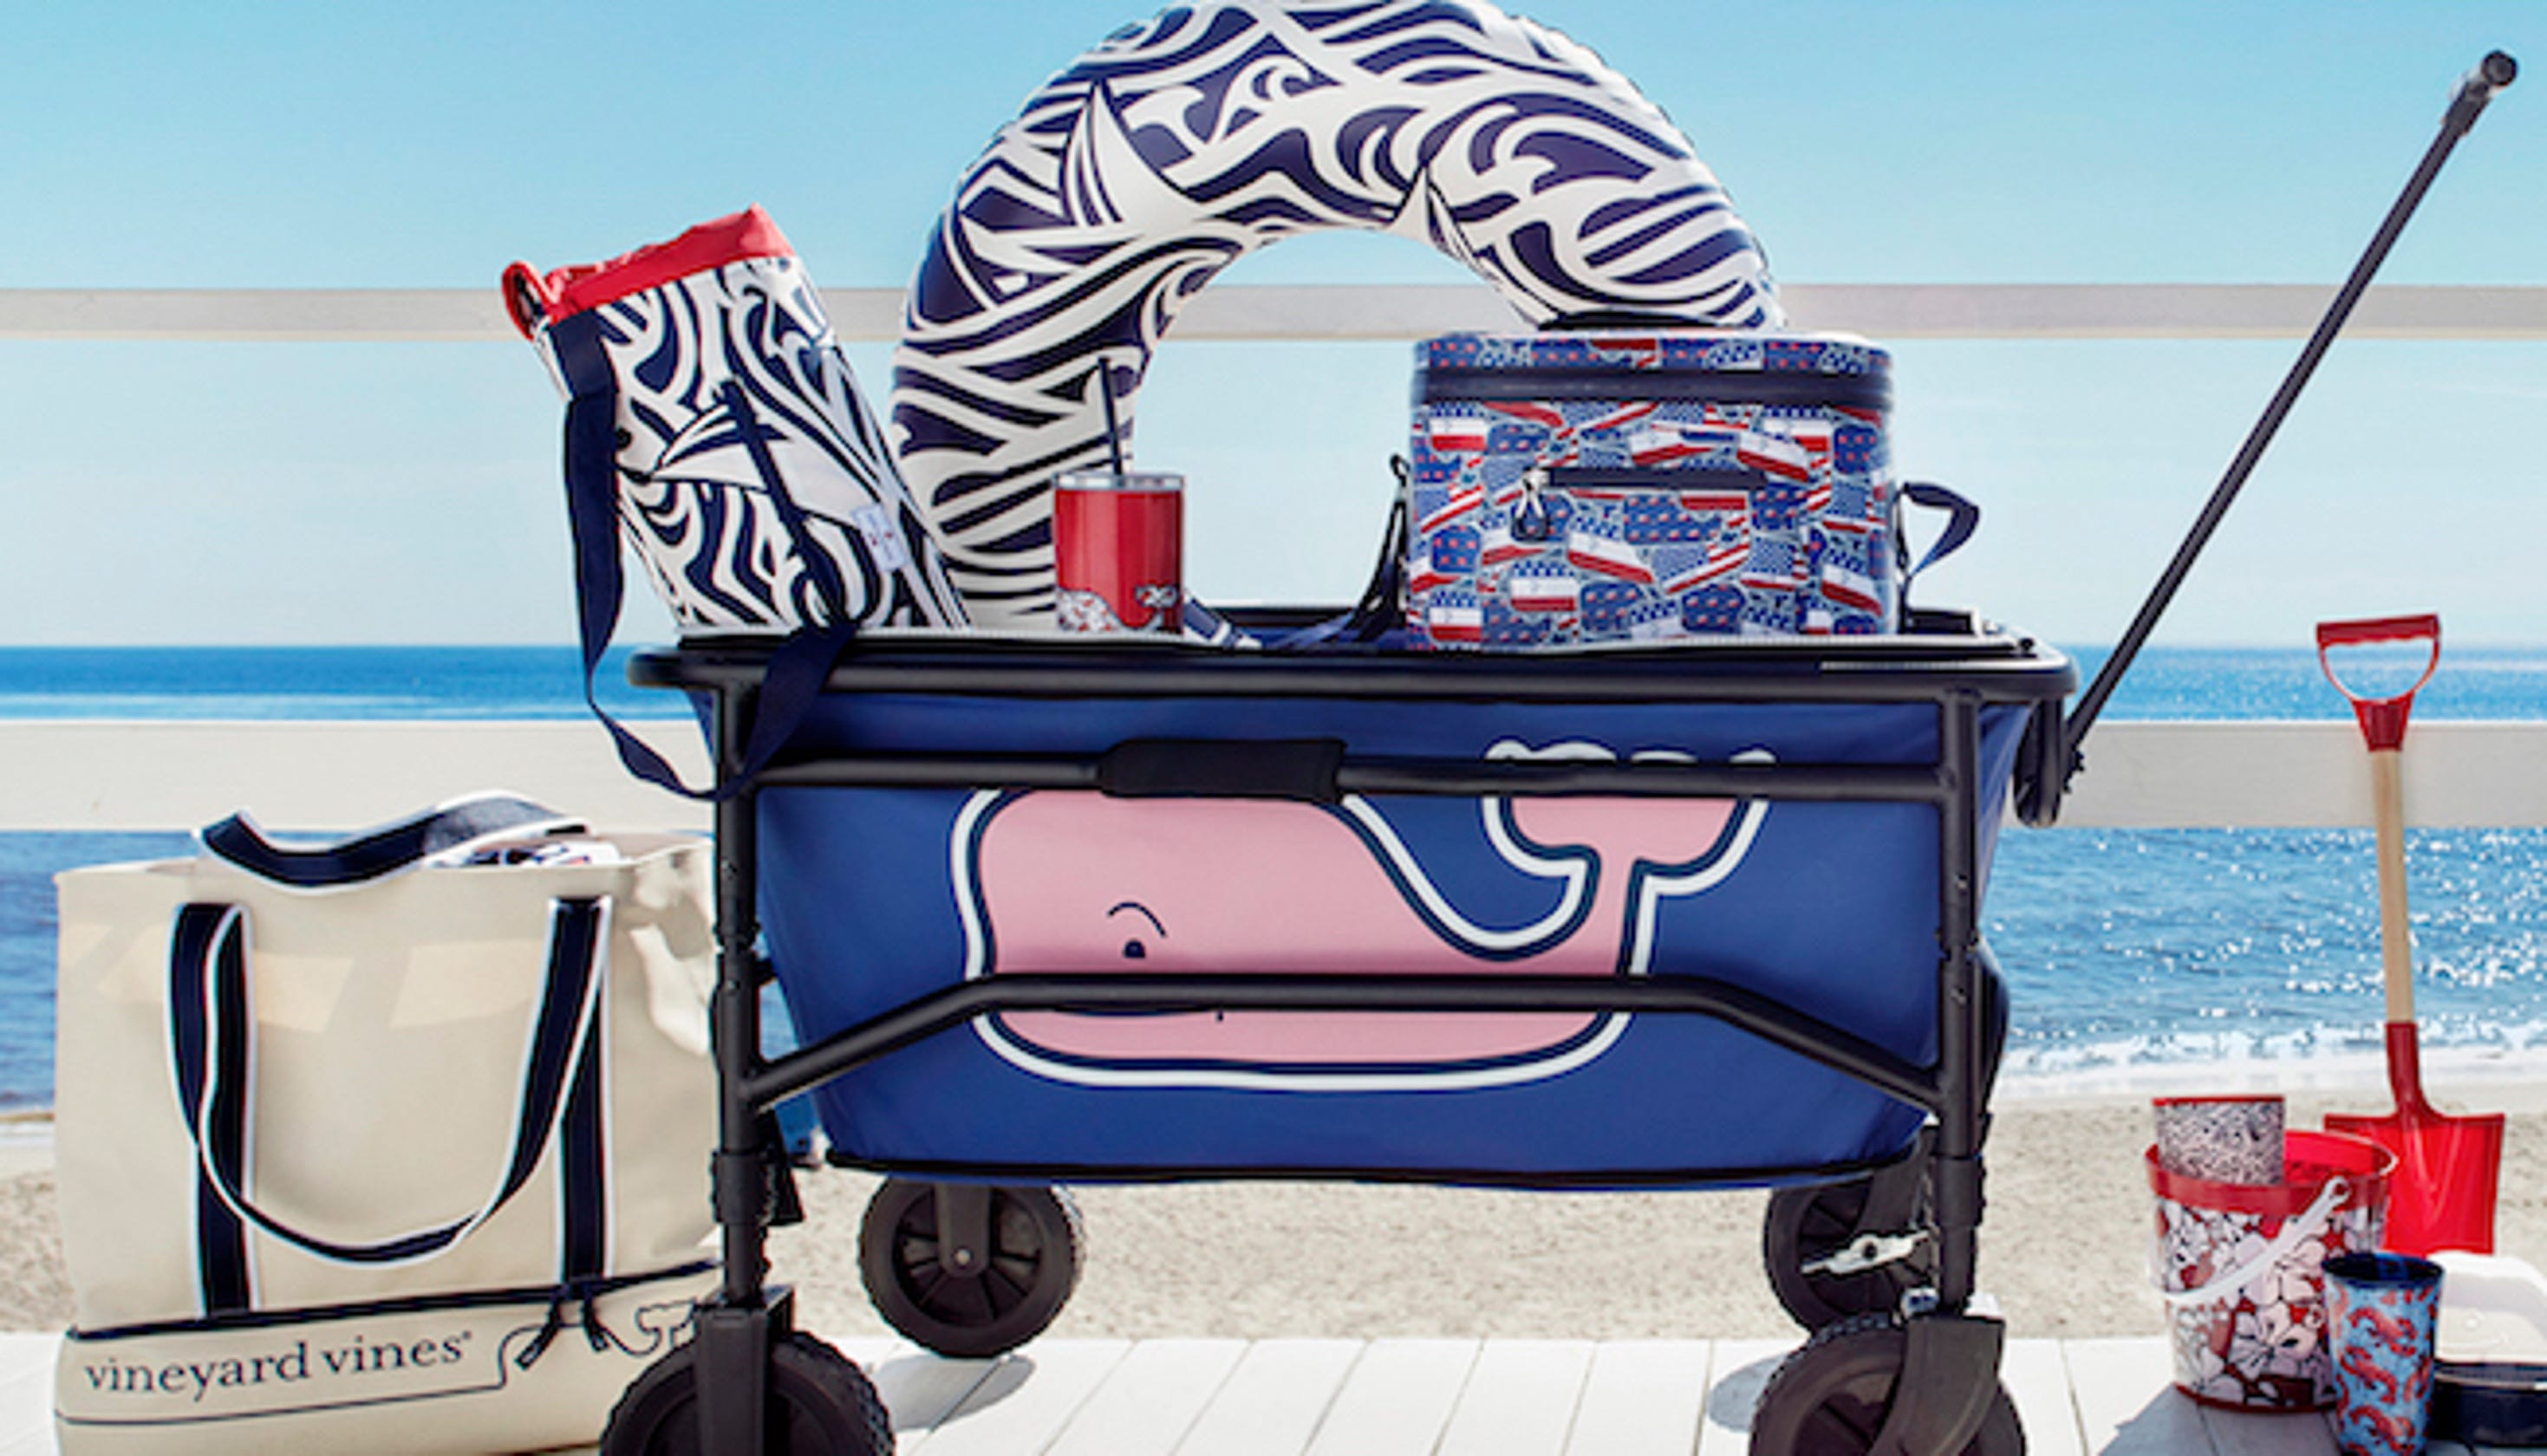 4800b8909 Vineyard Vines for Target: New limited collection goes on sale May 18